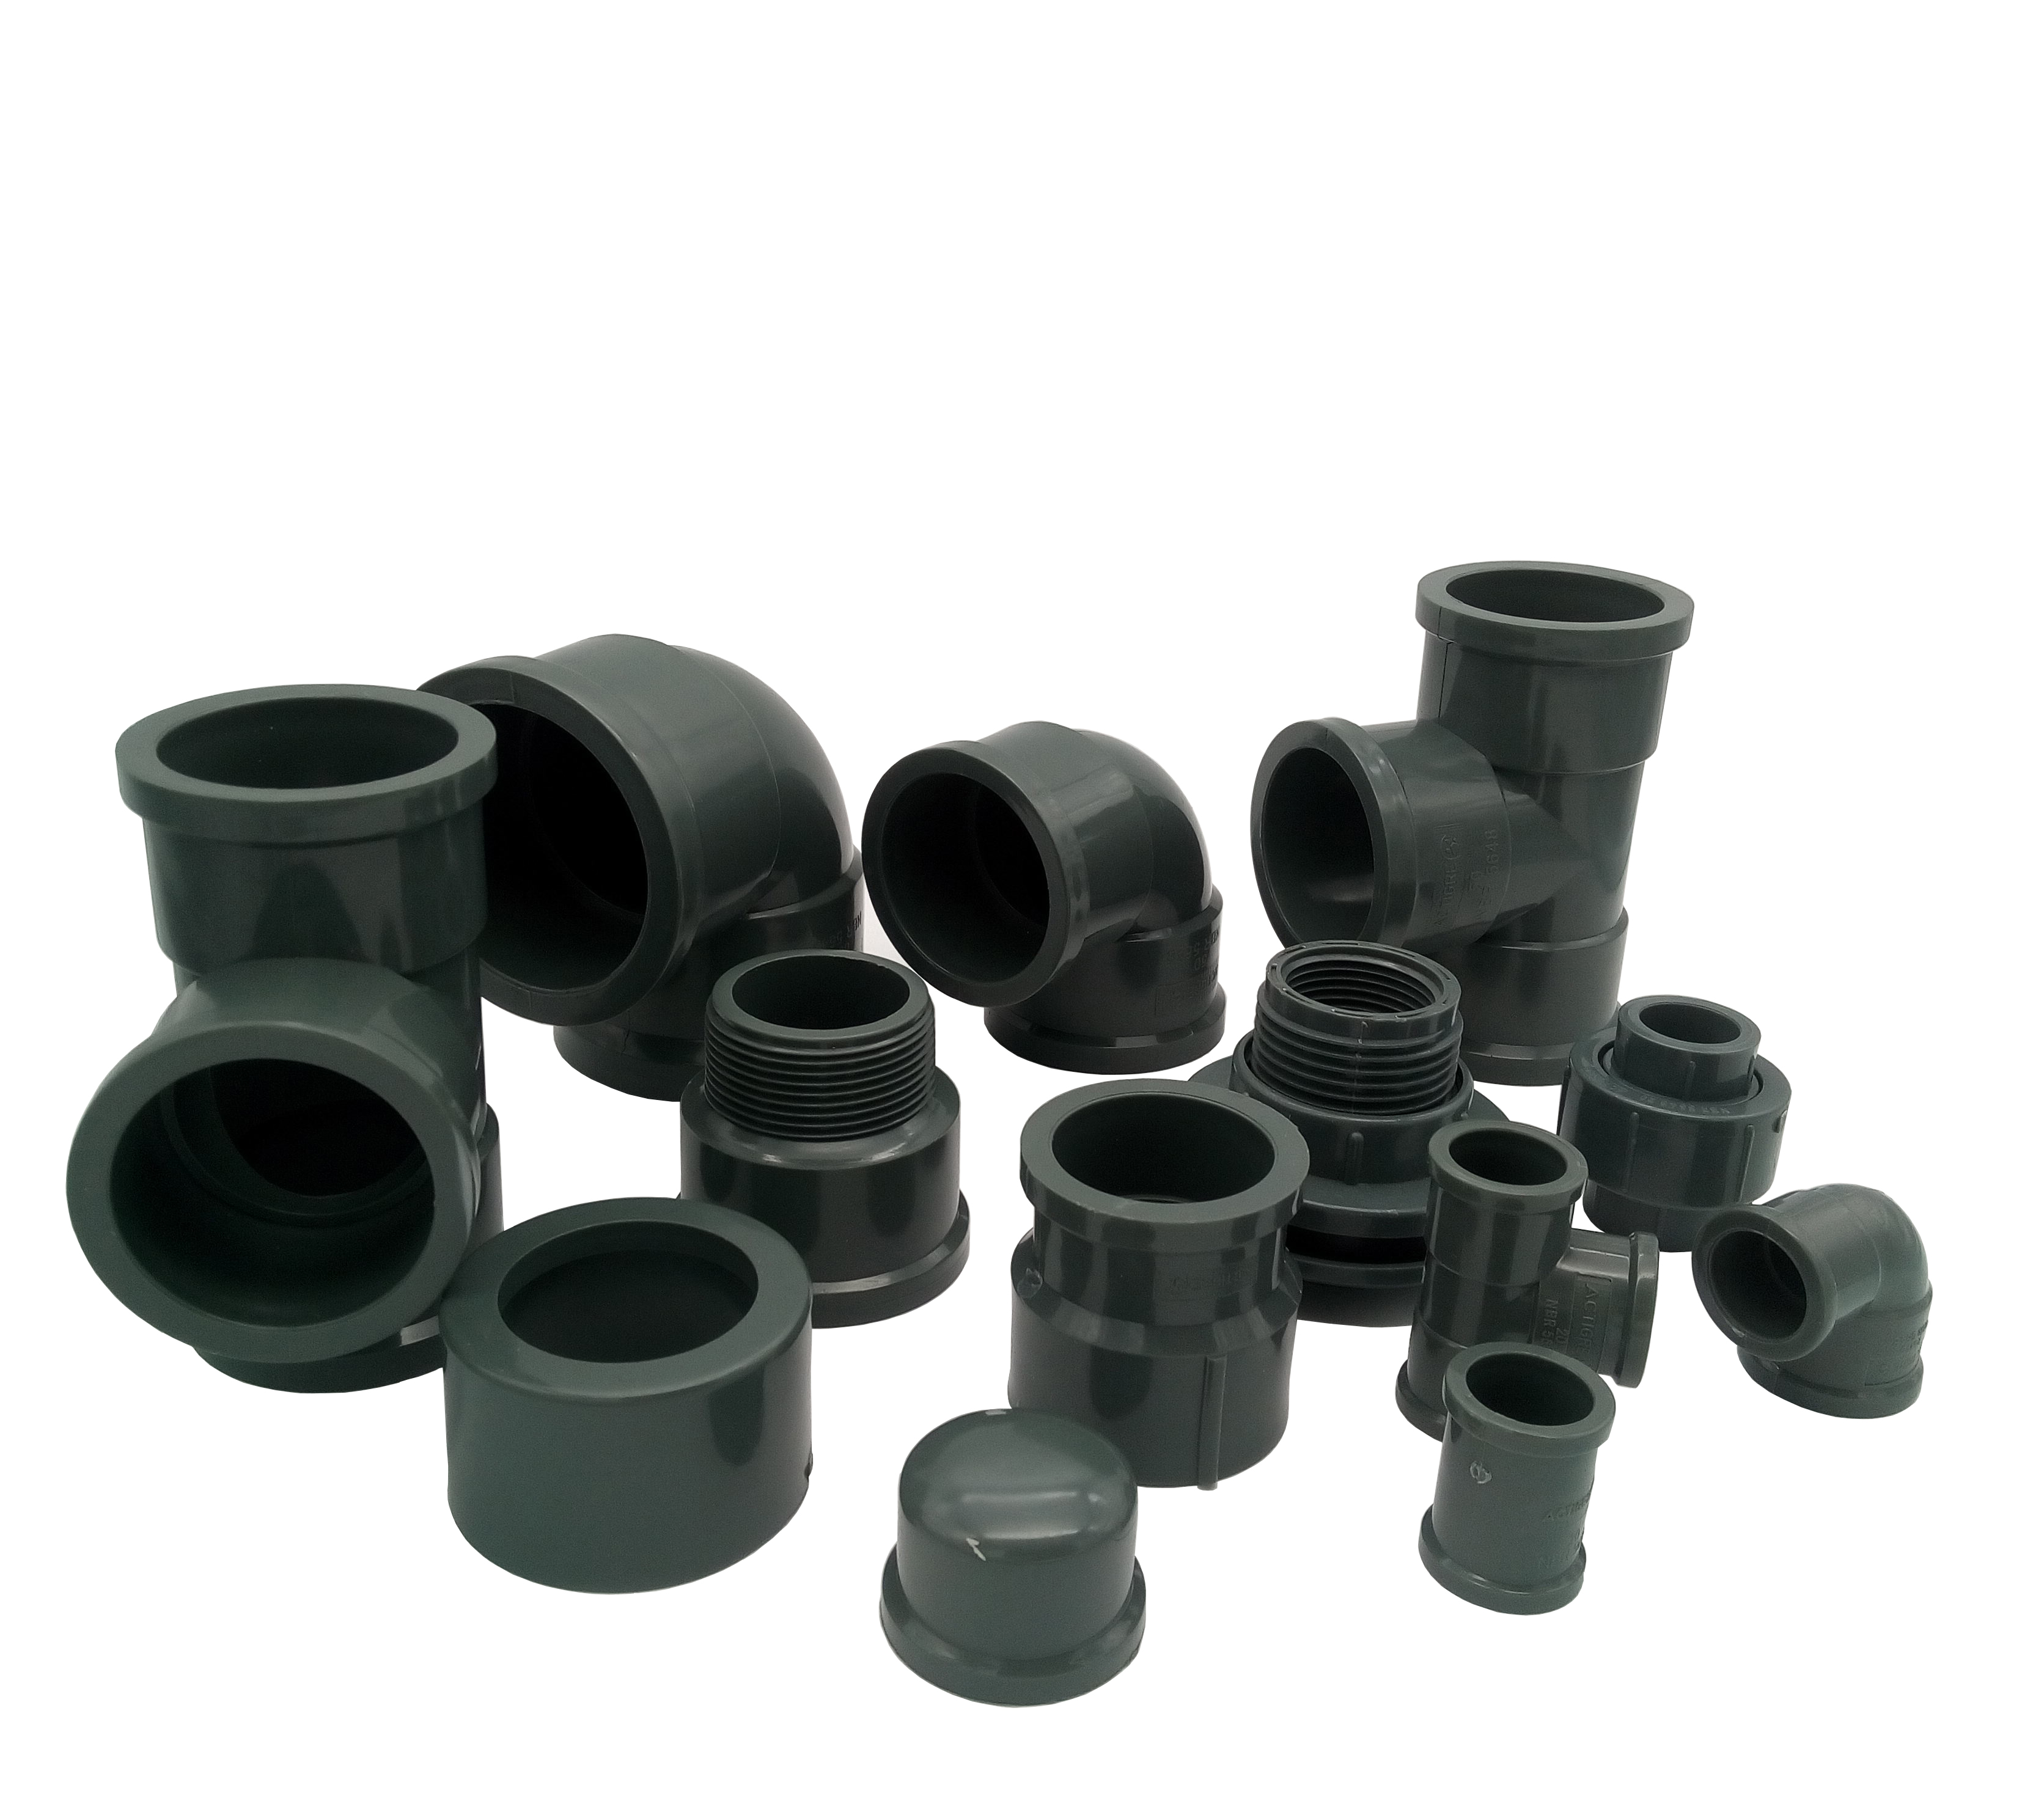 Nbr pvc pipe fittings